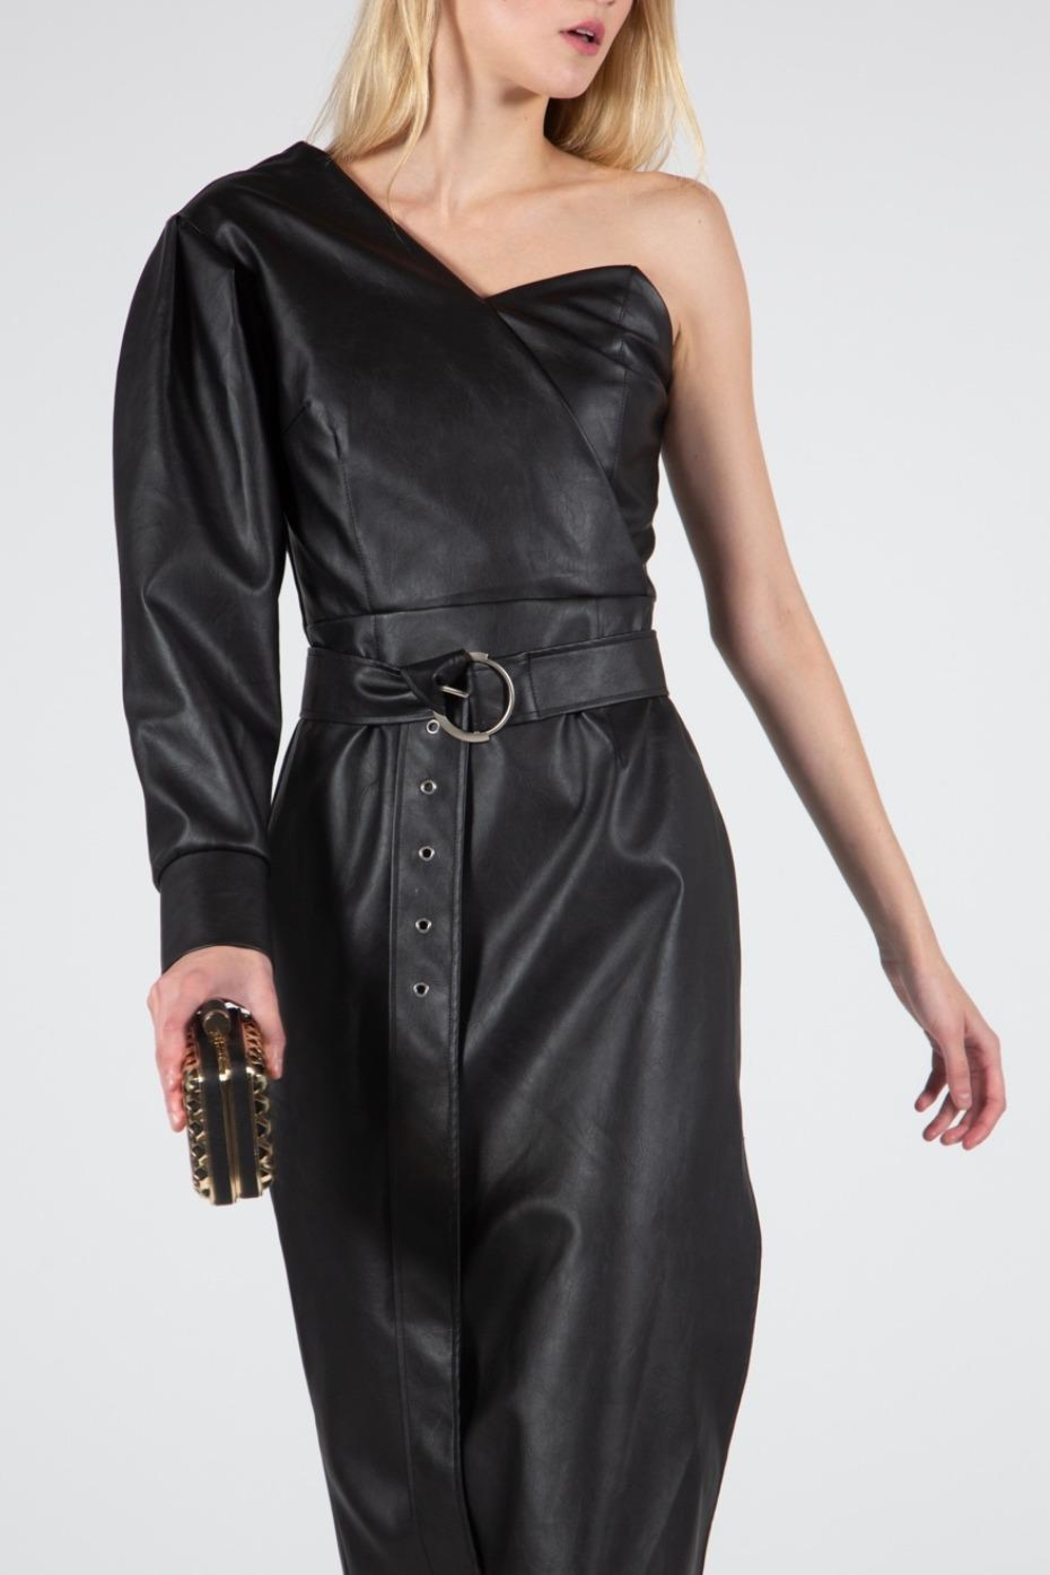 BEULAH STYLE Vegan Leather Dress - Back Cropped Image